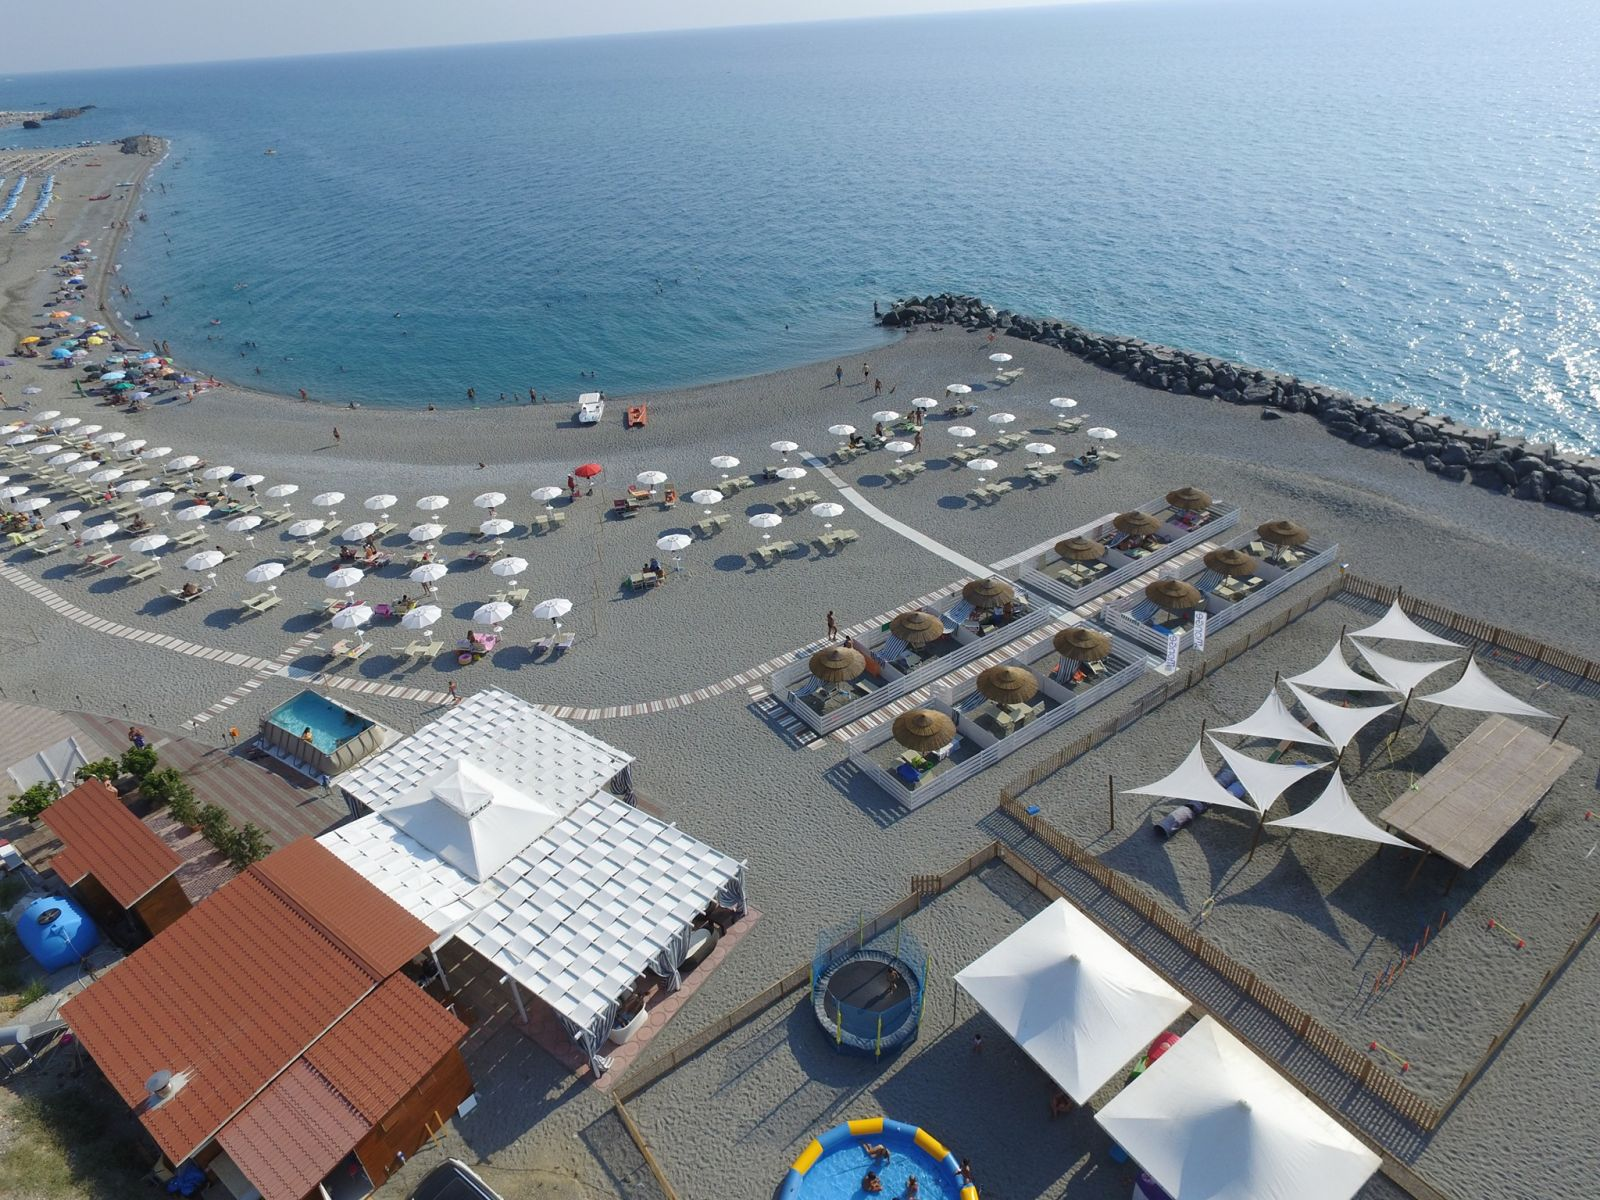 le migliori spiagge Pet Friendly d'Italia. Calabria, Amantea Pirate Dog Beach CS. Mypethotel